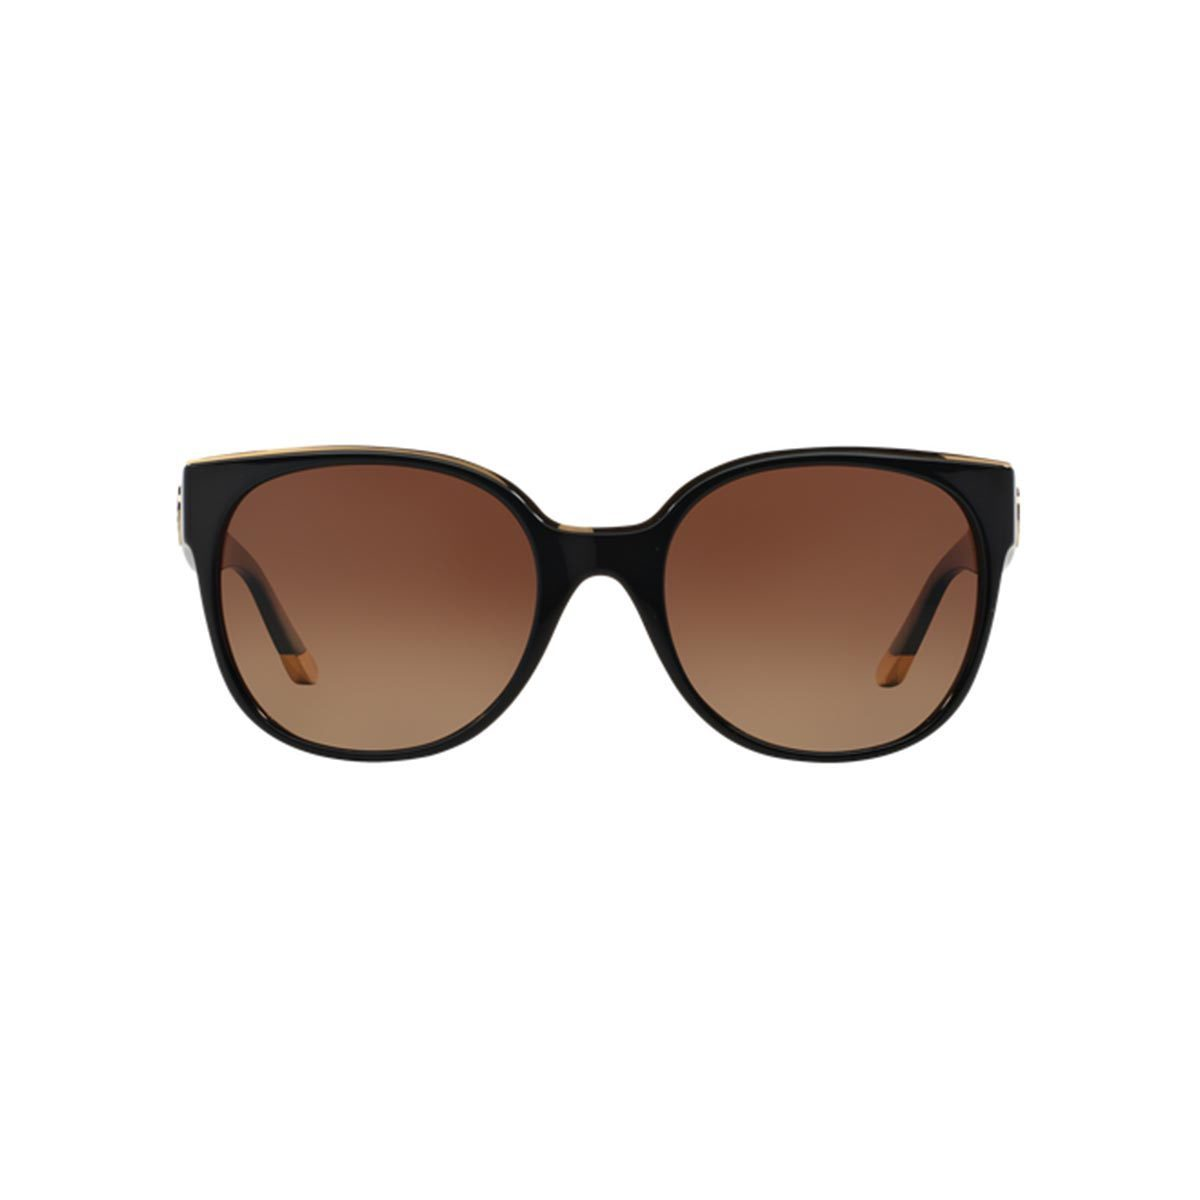 32e2cd3068 Shop Tory Burch Women s TY9042 1312T5 Black Plastic Square Polarized  Sunglasses - Free Shipping Today - Overstock - 10857073